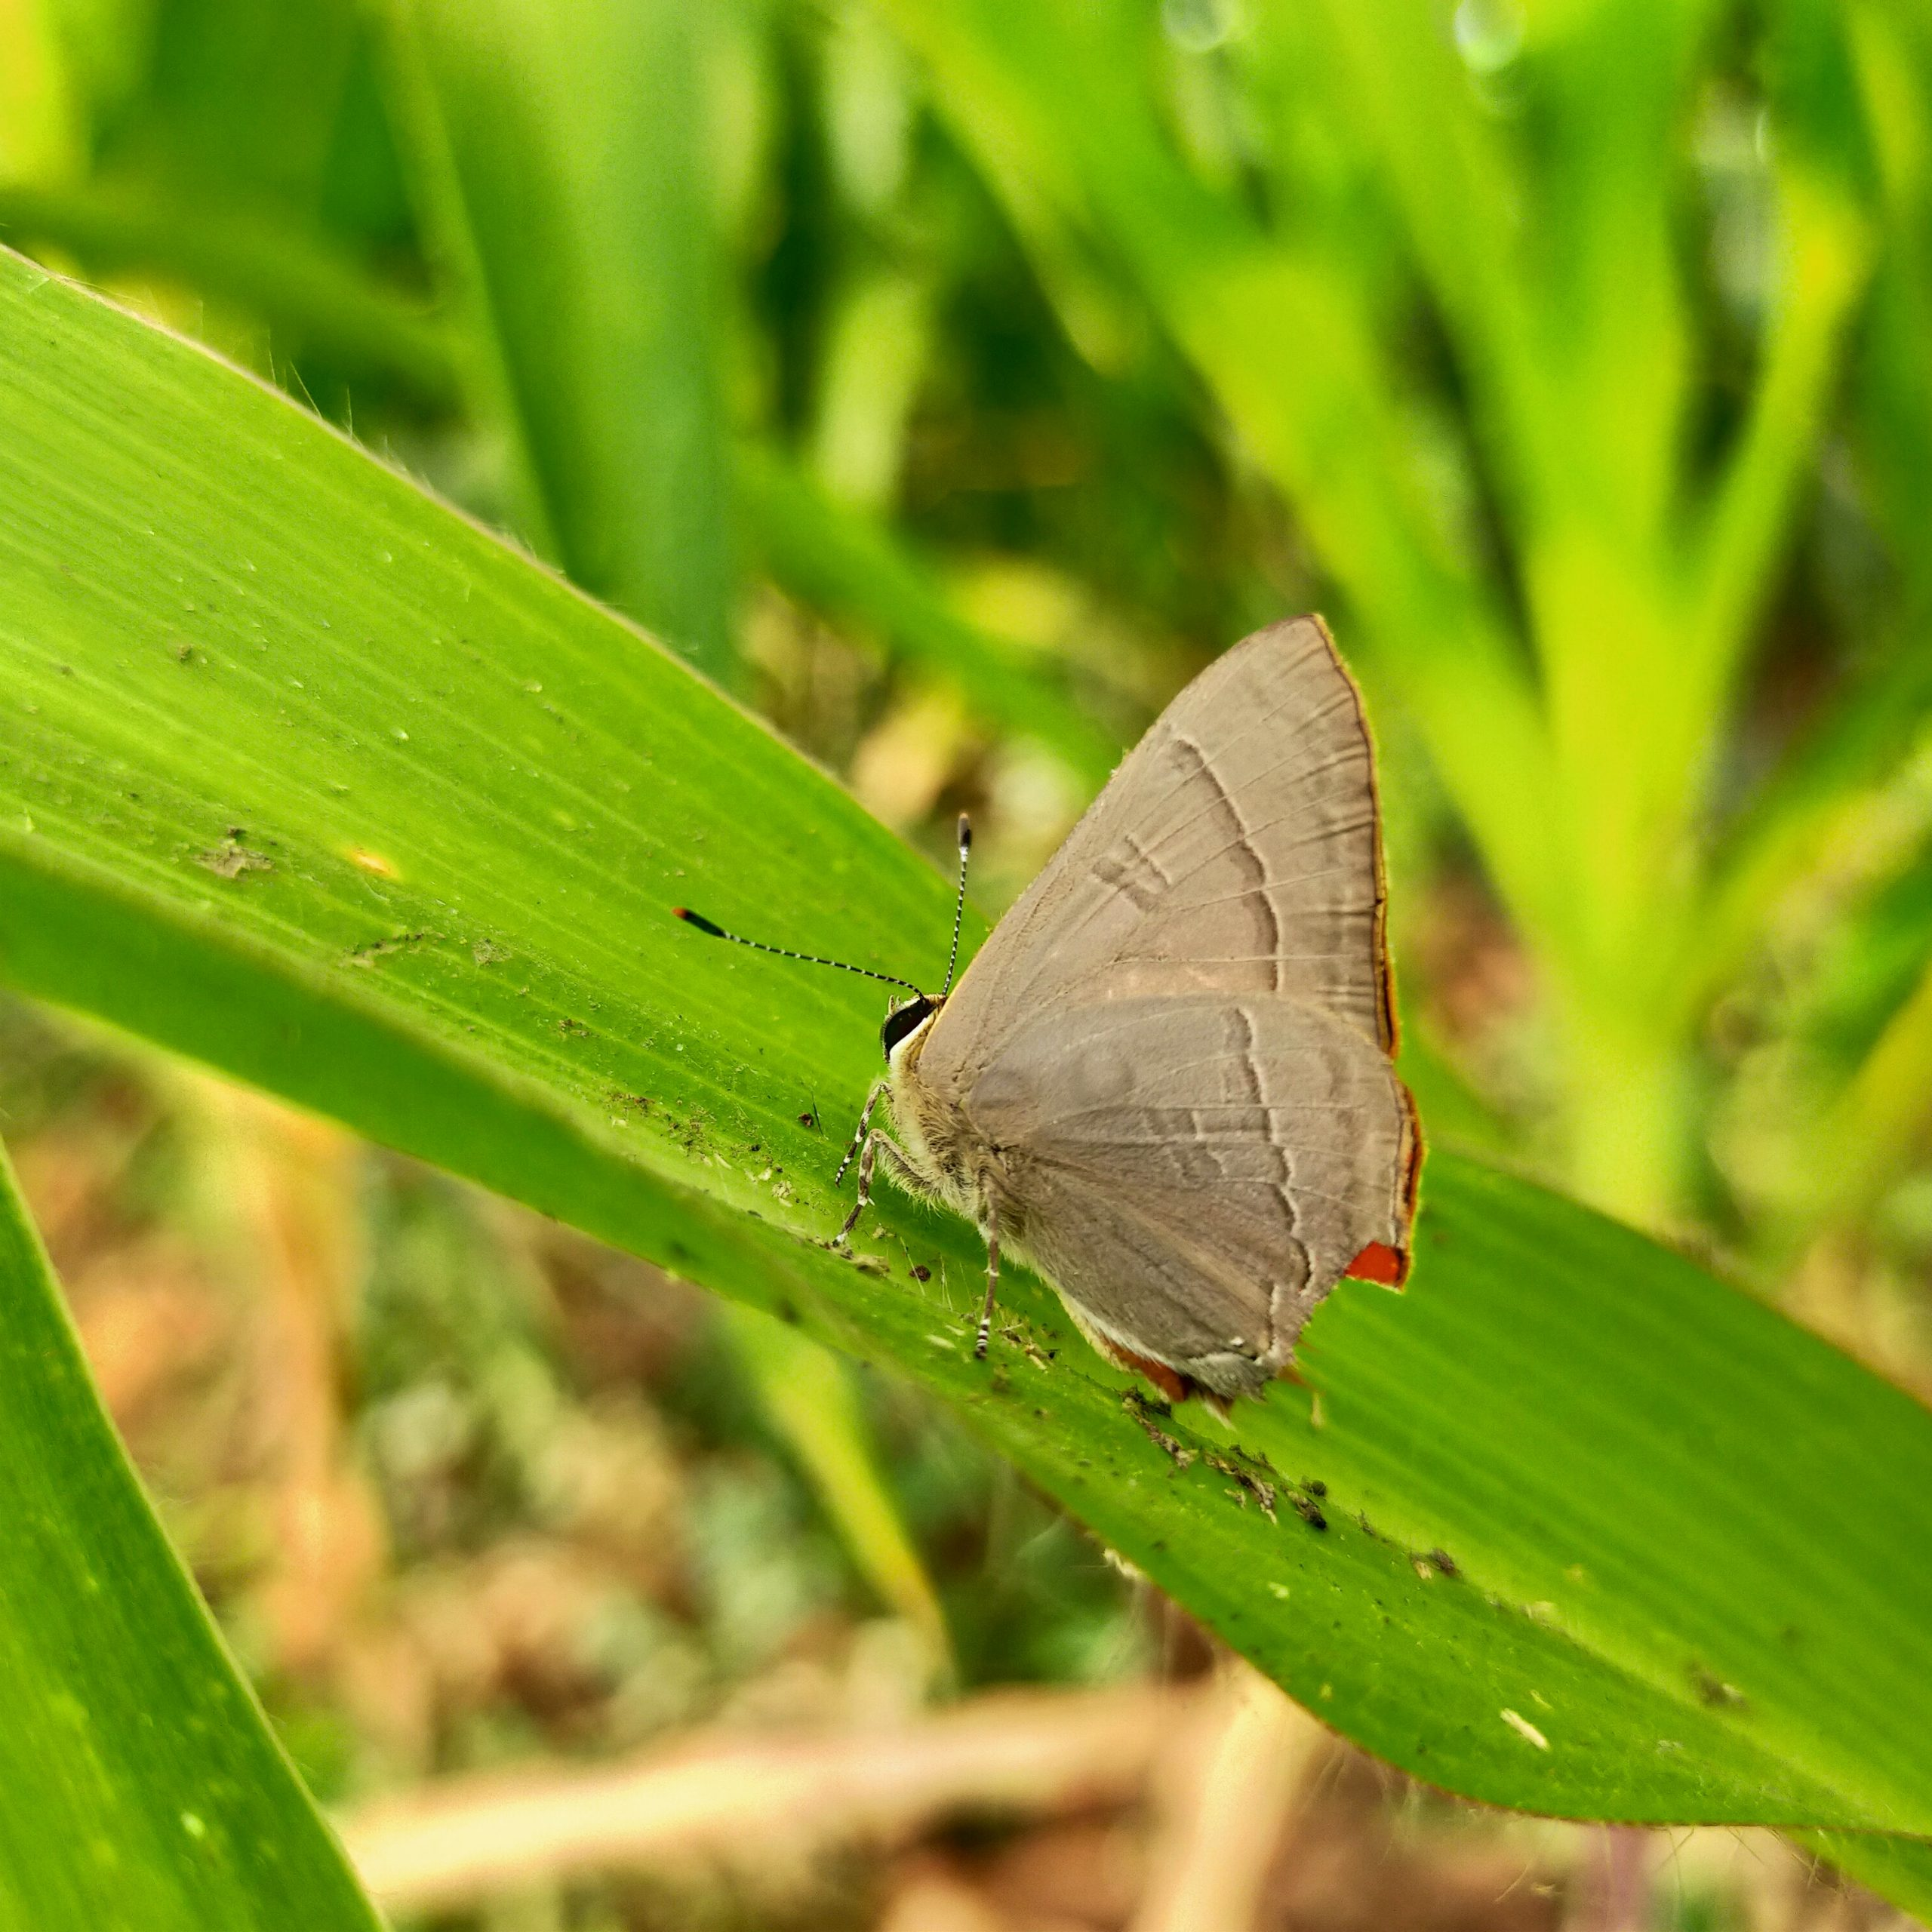 A butterfly on a green leaf